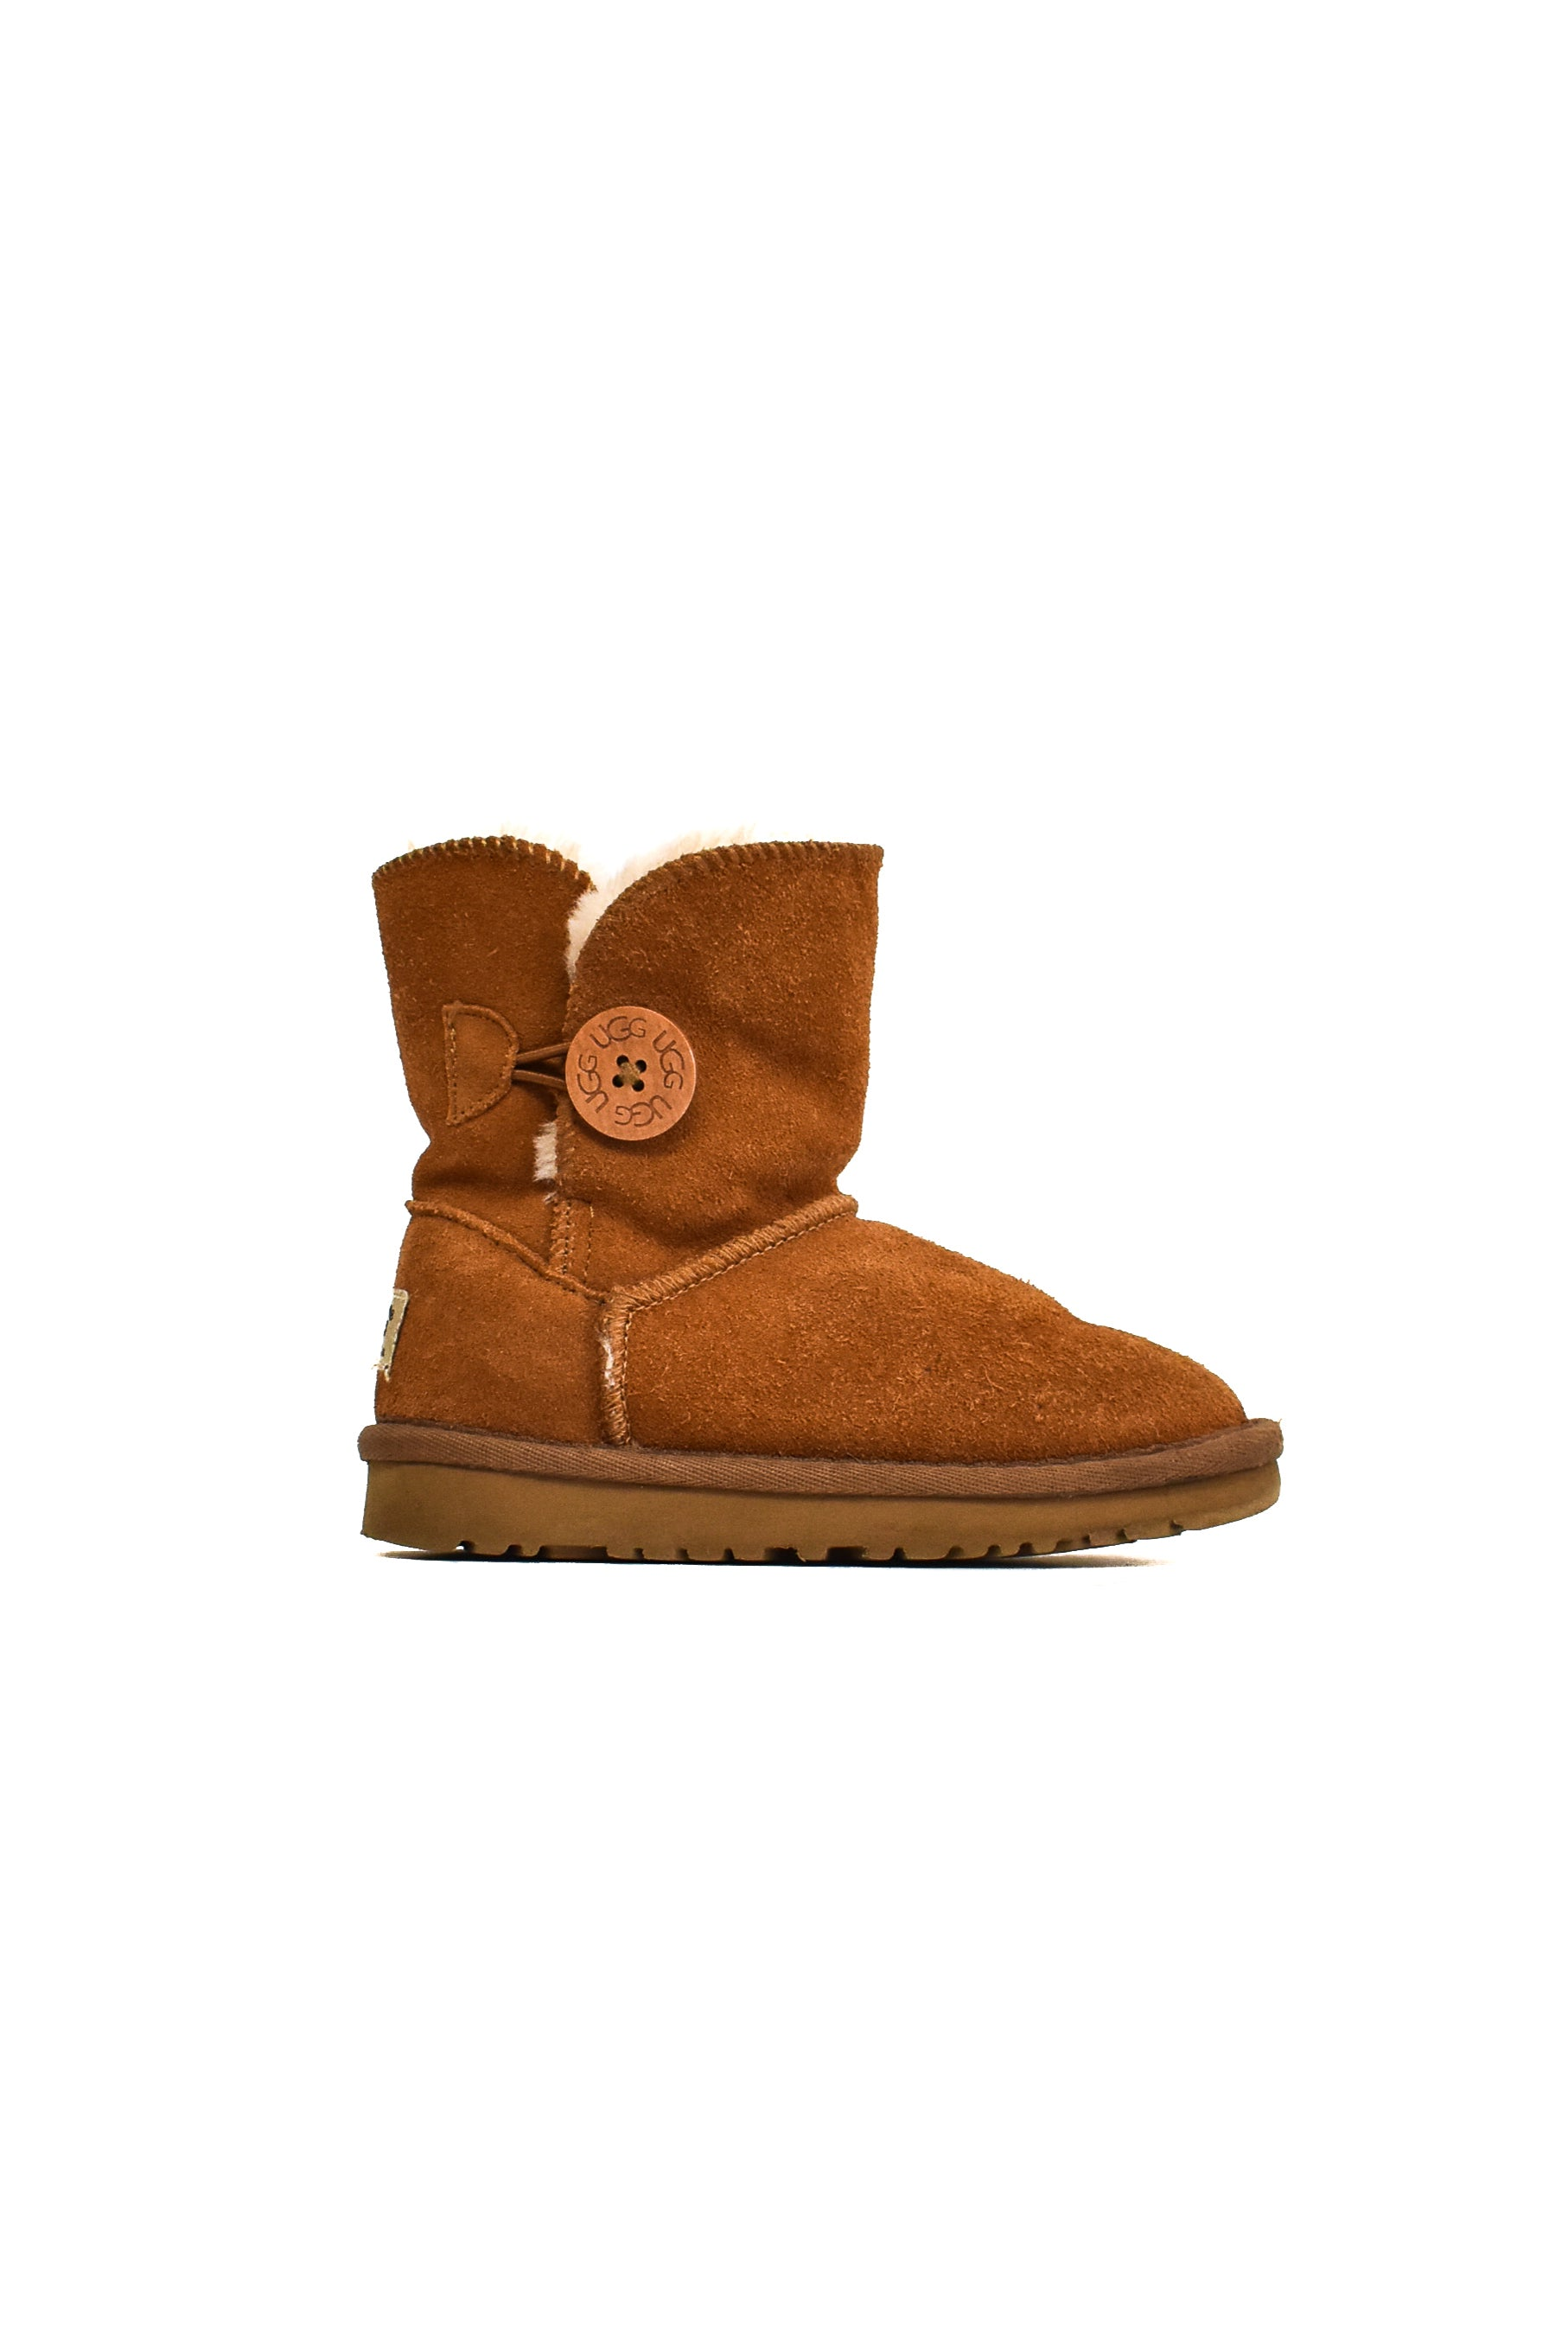 10007704 UGG Kids~ Boots EU 31 at Retykle